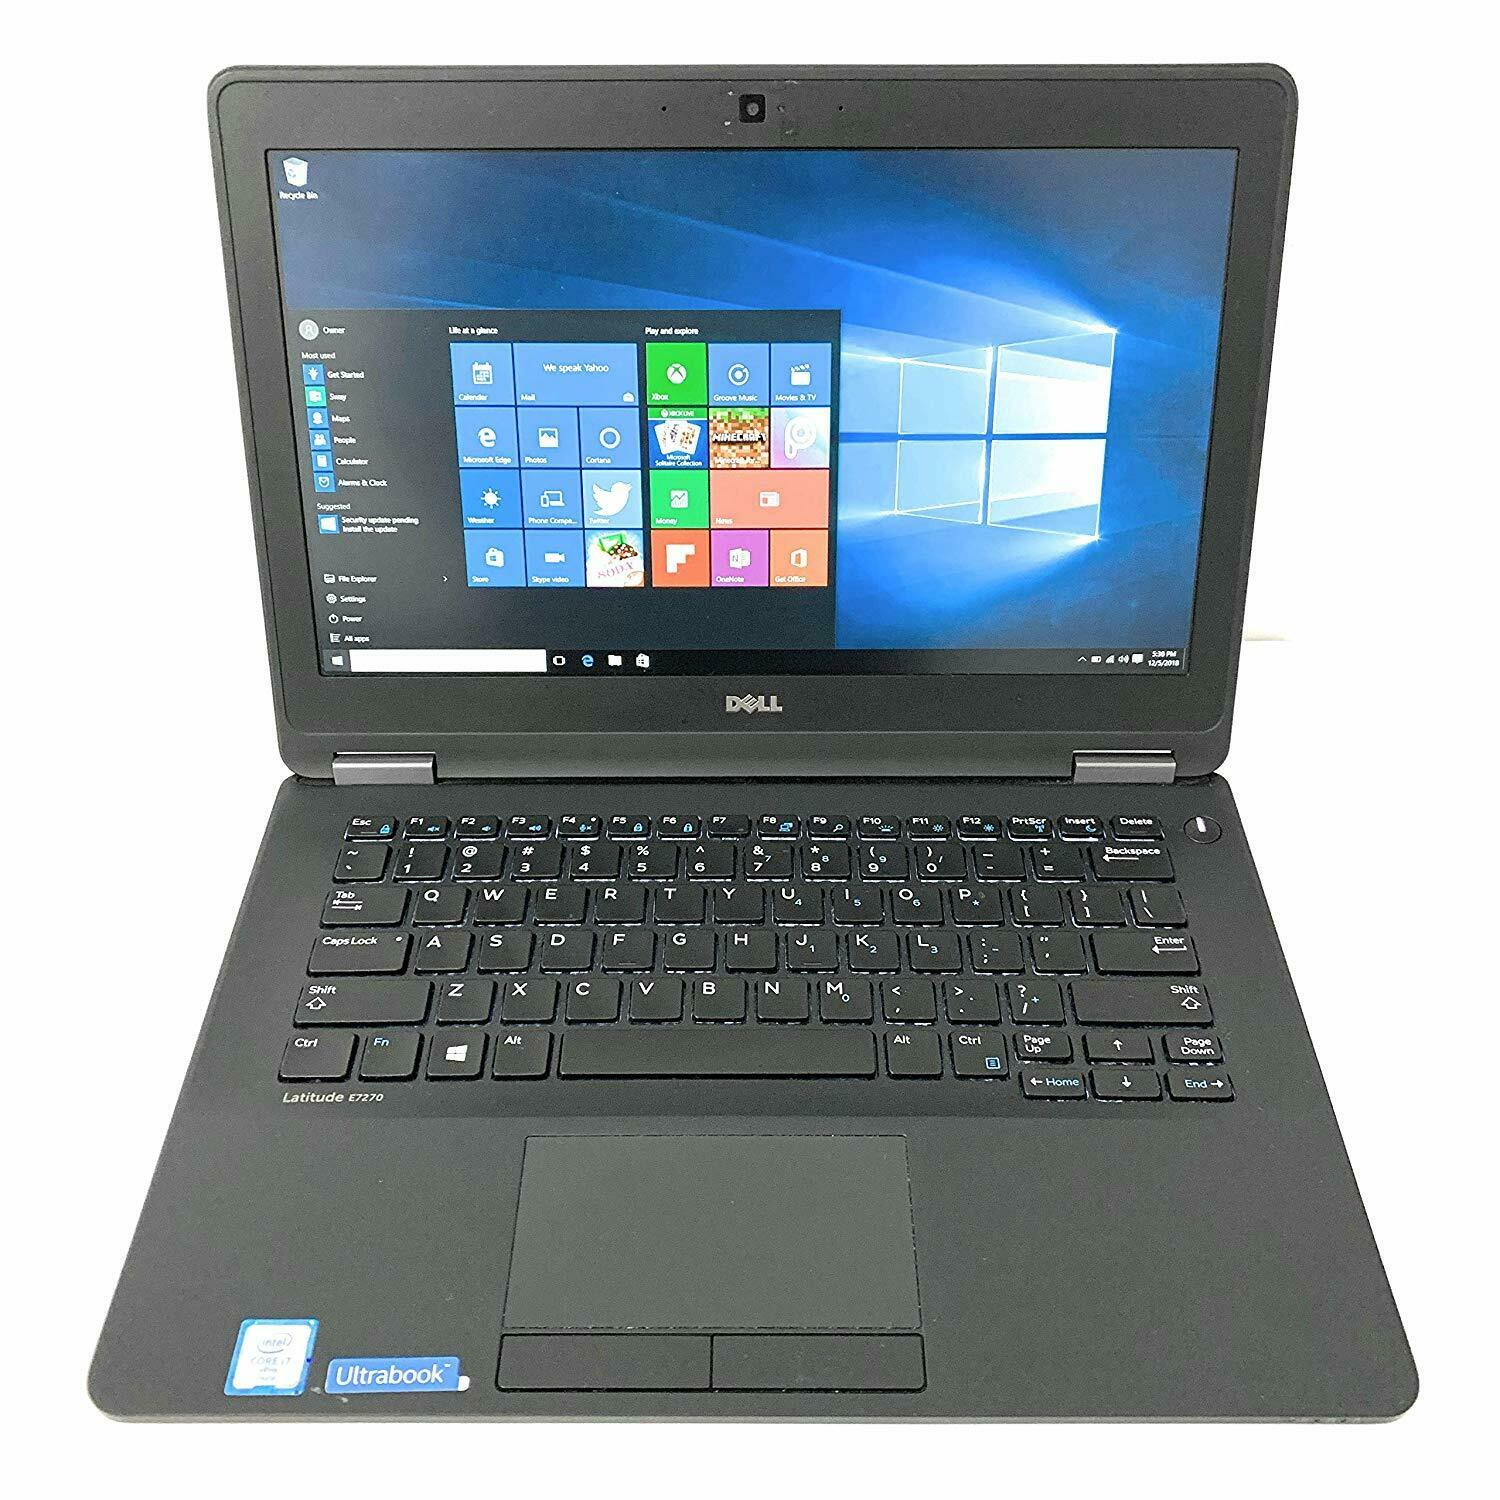 Dell Latitude E7270 Core i7 6600U, Ram 8GB, SSD 256GB, 12.5 Inch, HD Graphics 520